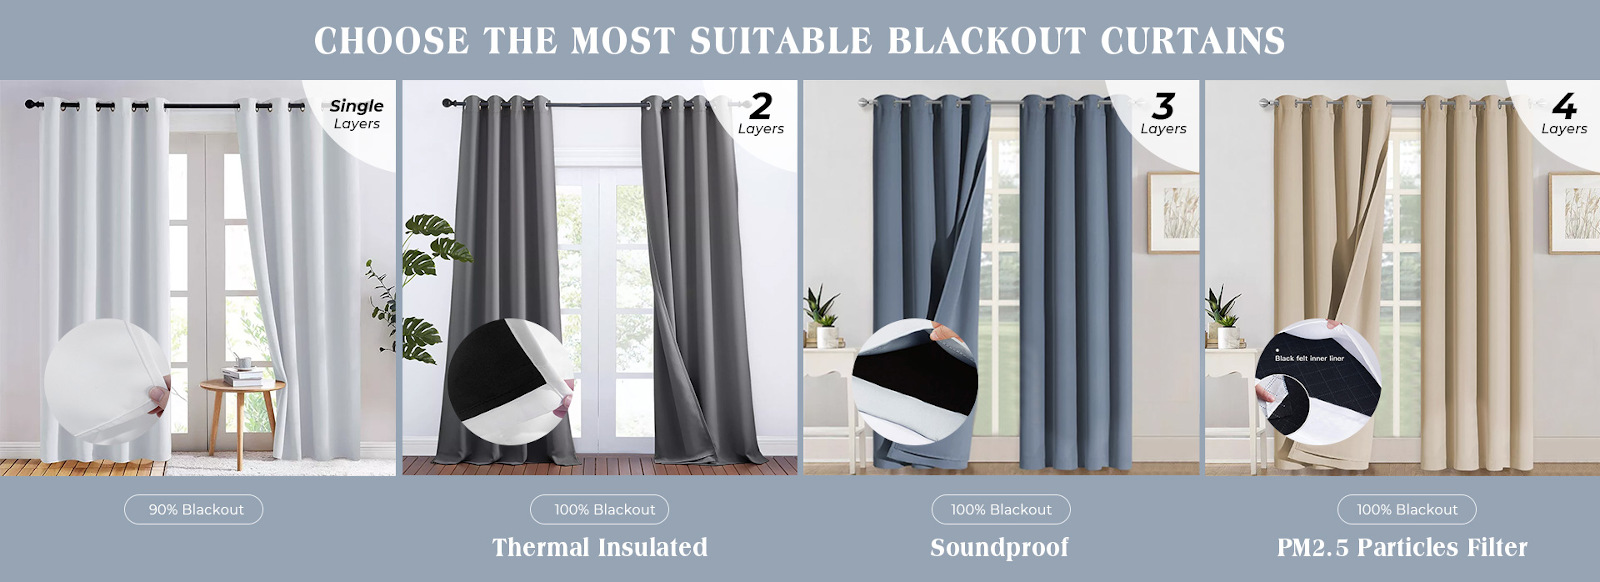 Quality blackout curtains